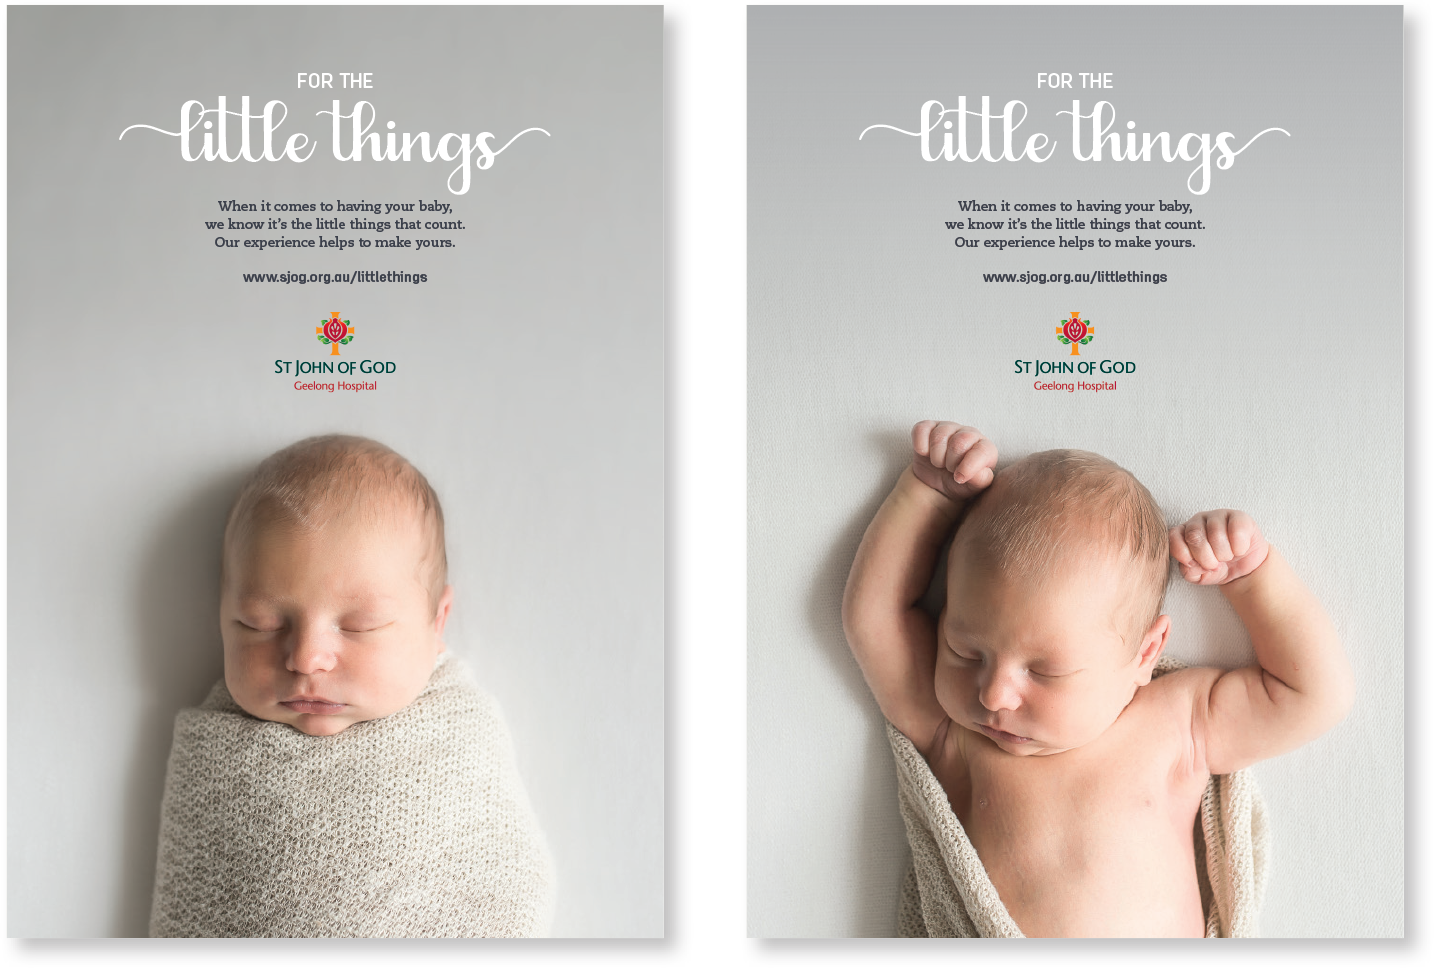 St John of God Maternity Campaign Posters